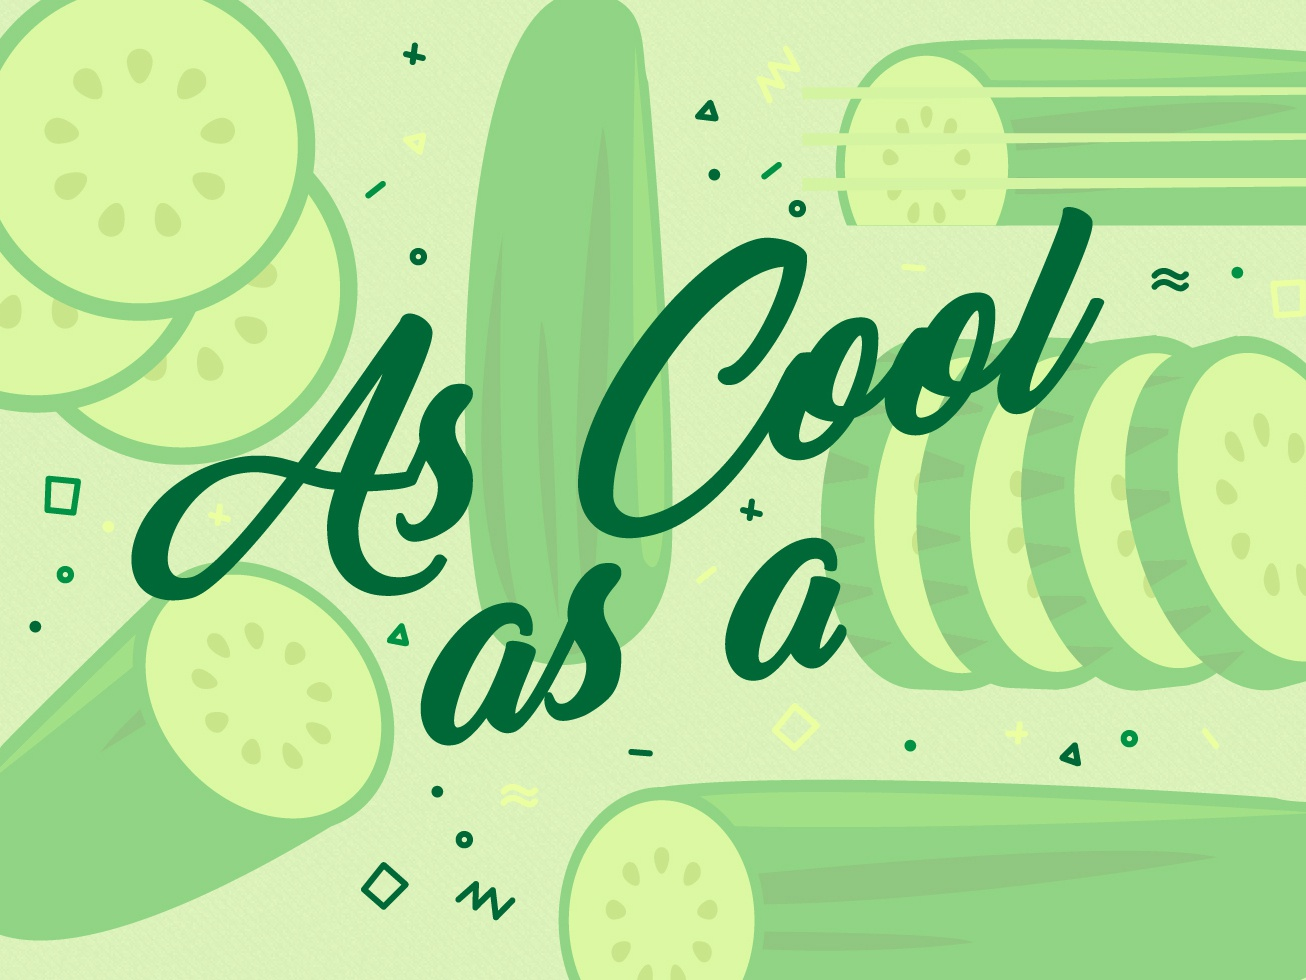 Cucumber freezing cool colors ice cold super cool slice gin and tonic wordmark lettering illustration cucumber cool